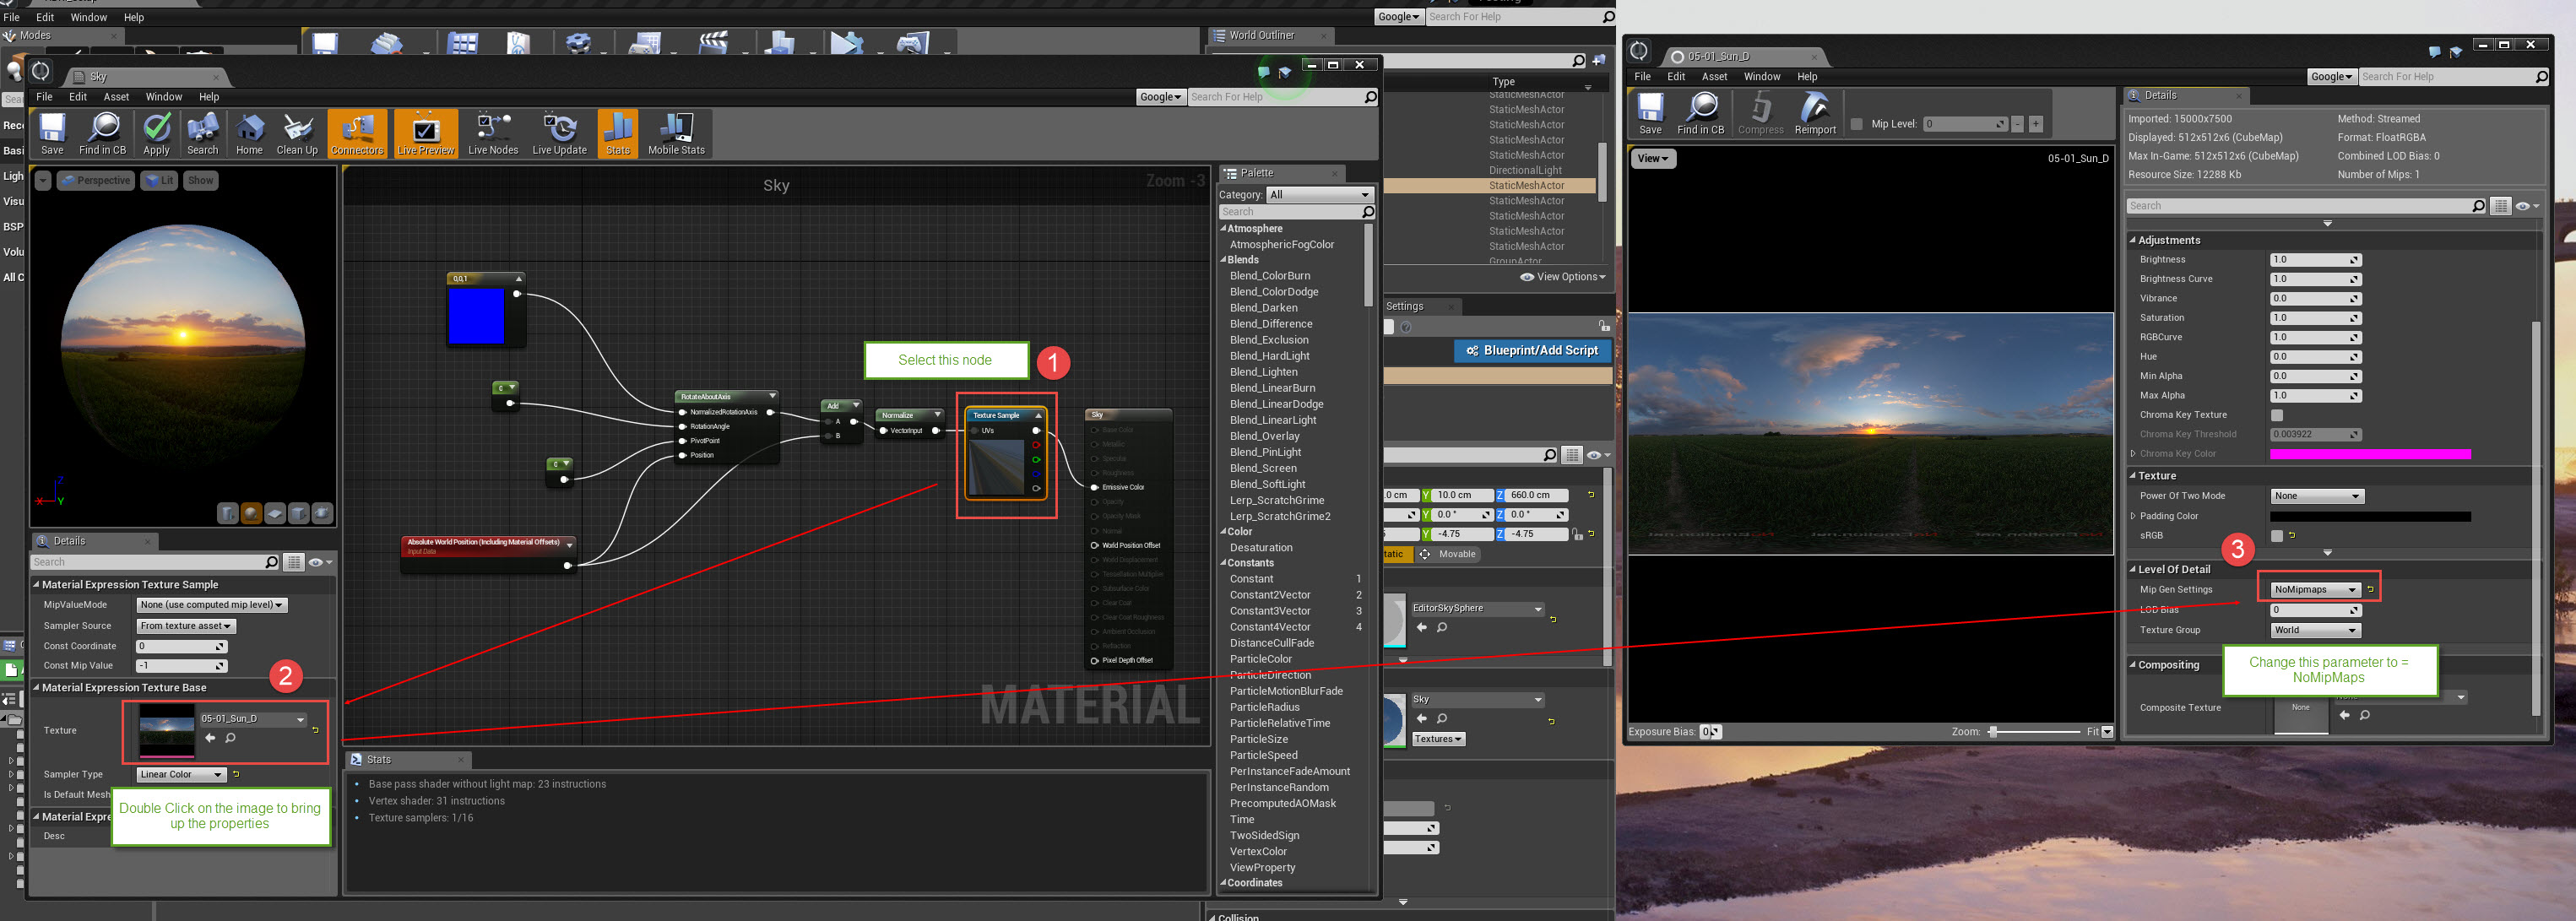 HDRI Lighting in Unreal Engine – Page 2 – Real Time 3D Architecture